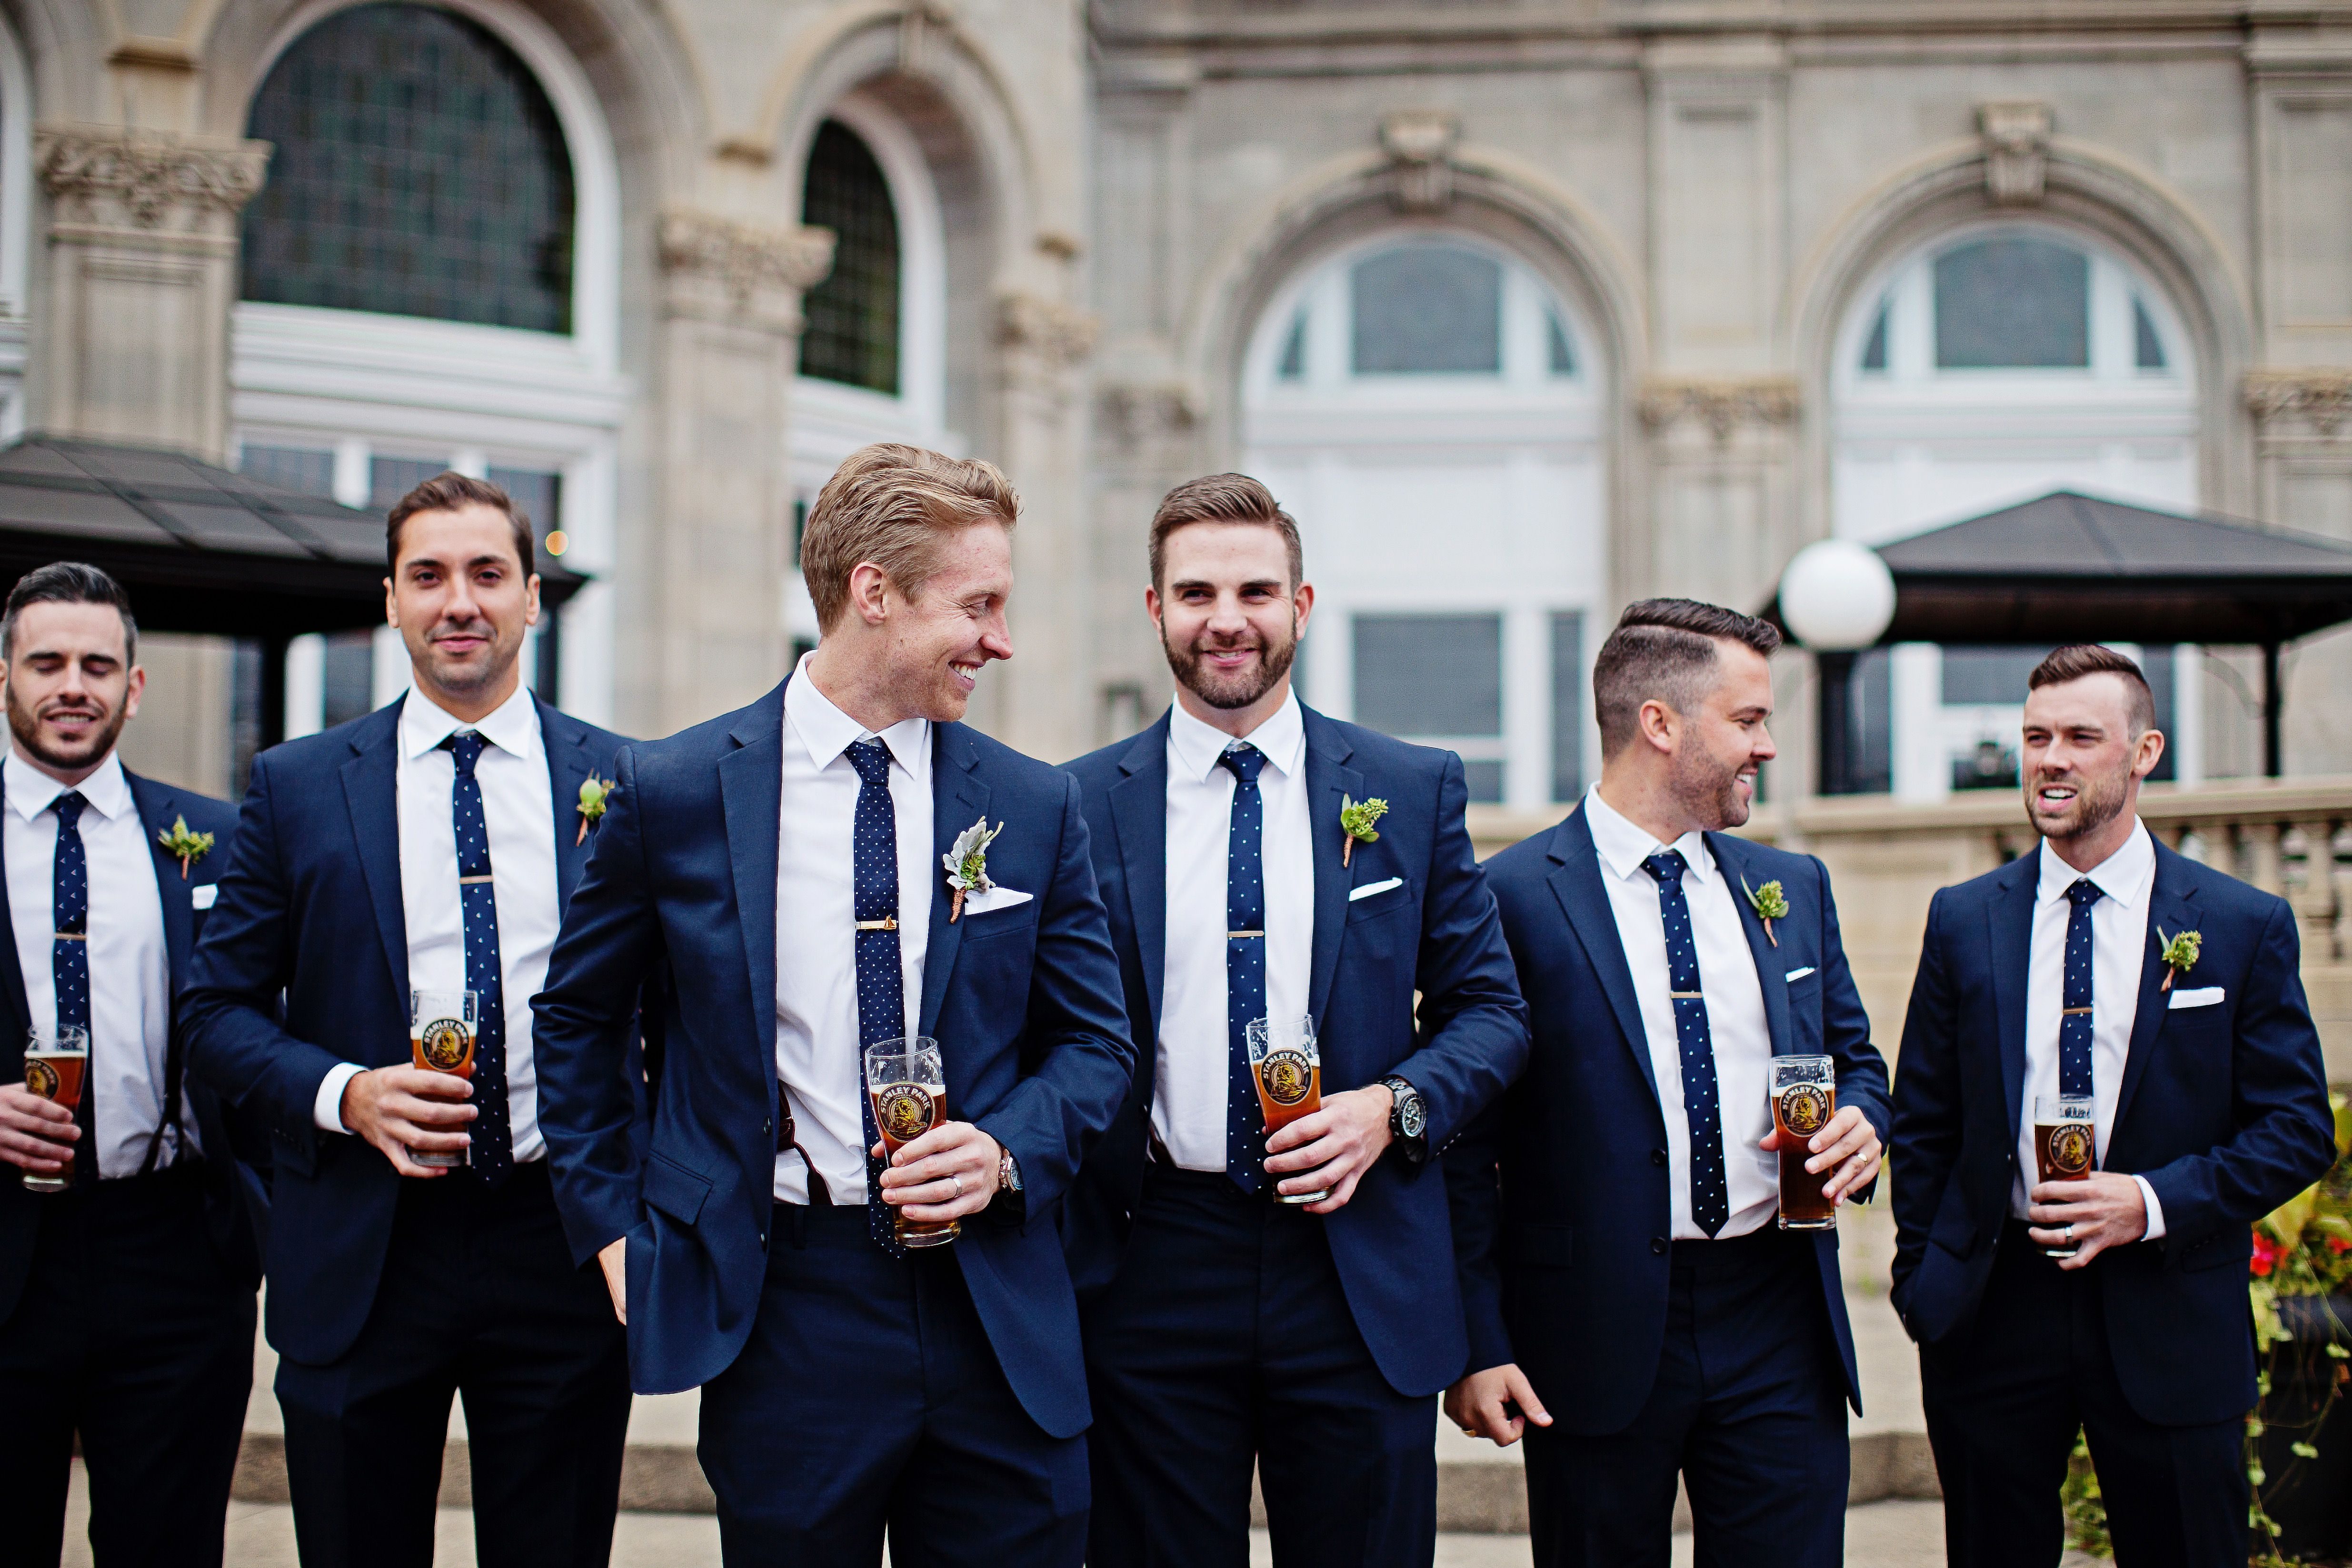 Wedding Party Photography Blush Copper White Navy Suits Fall